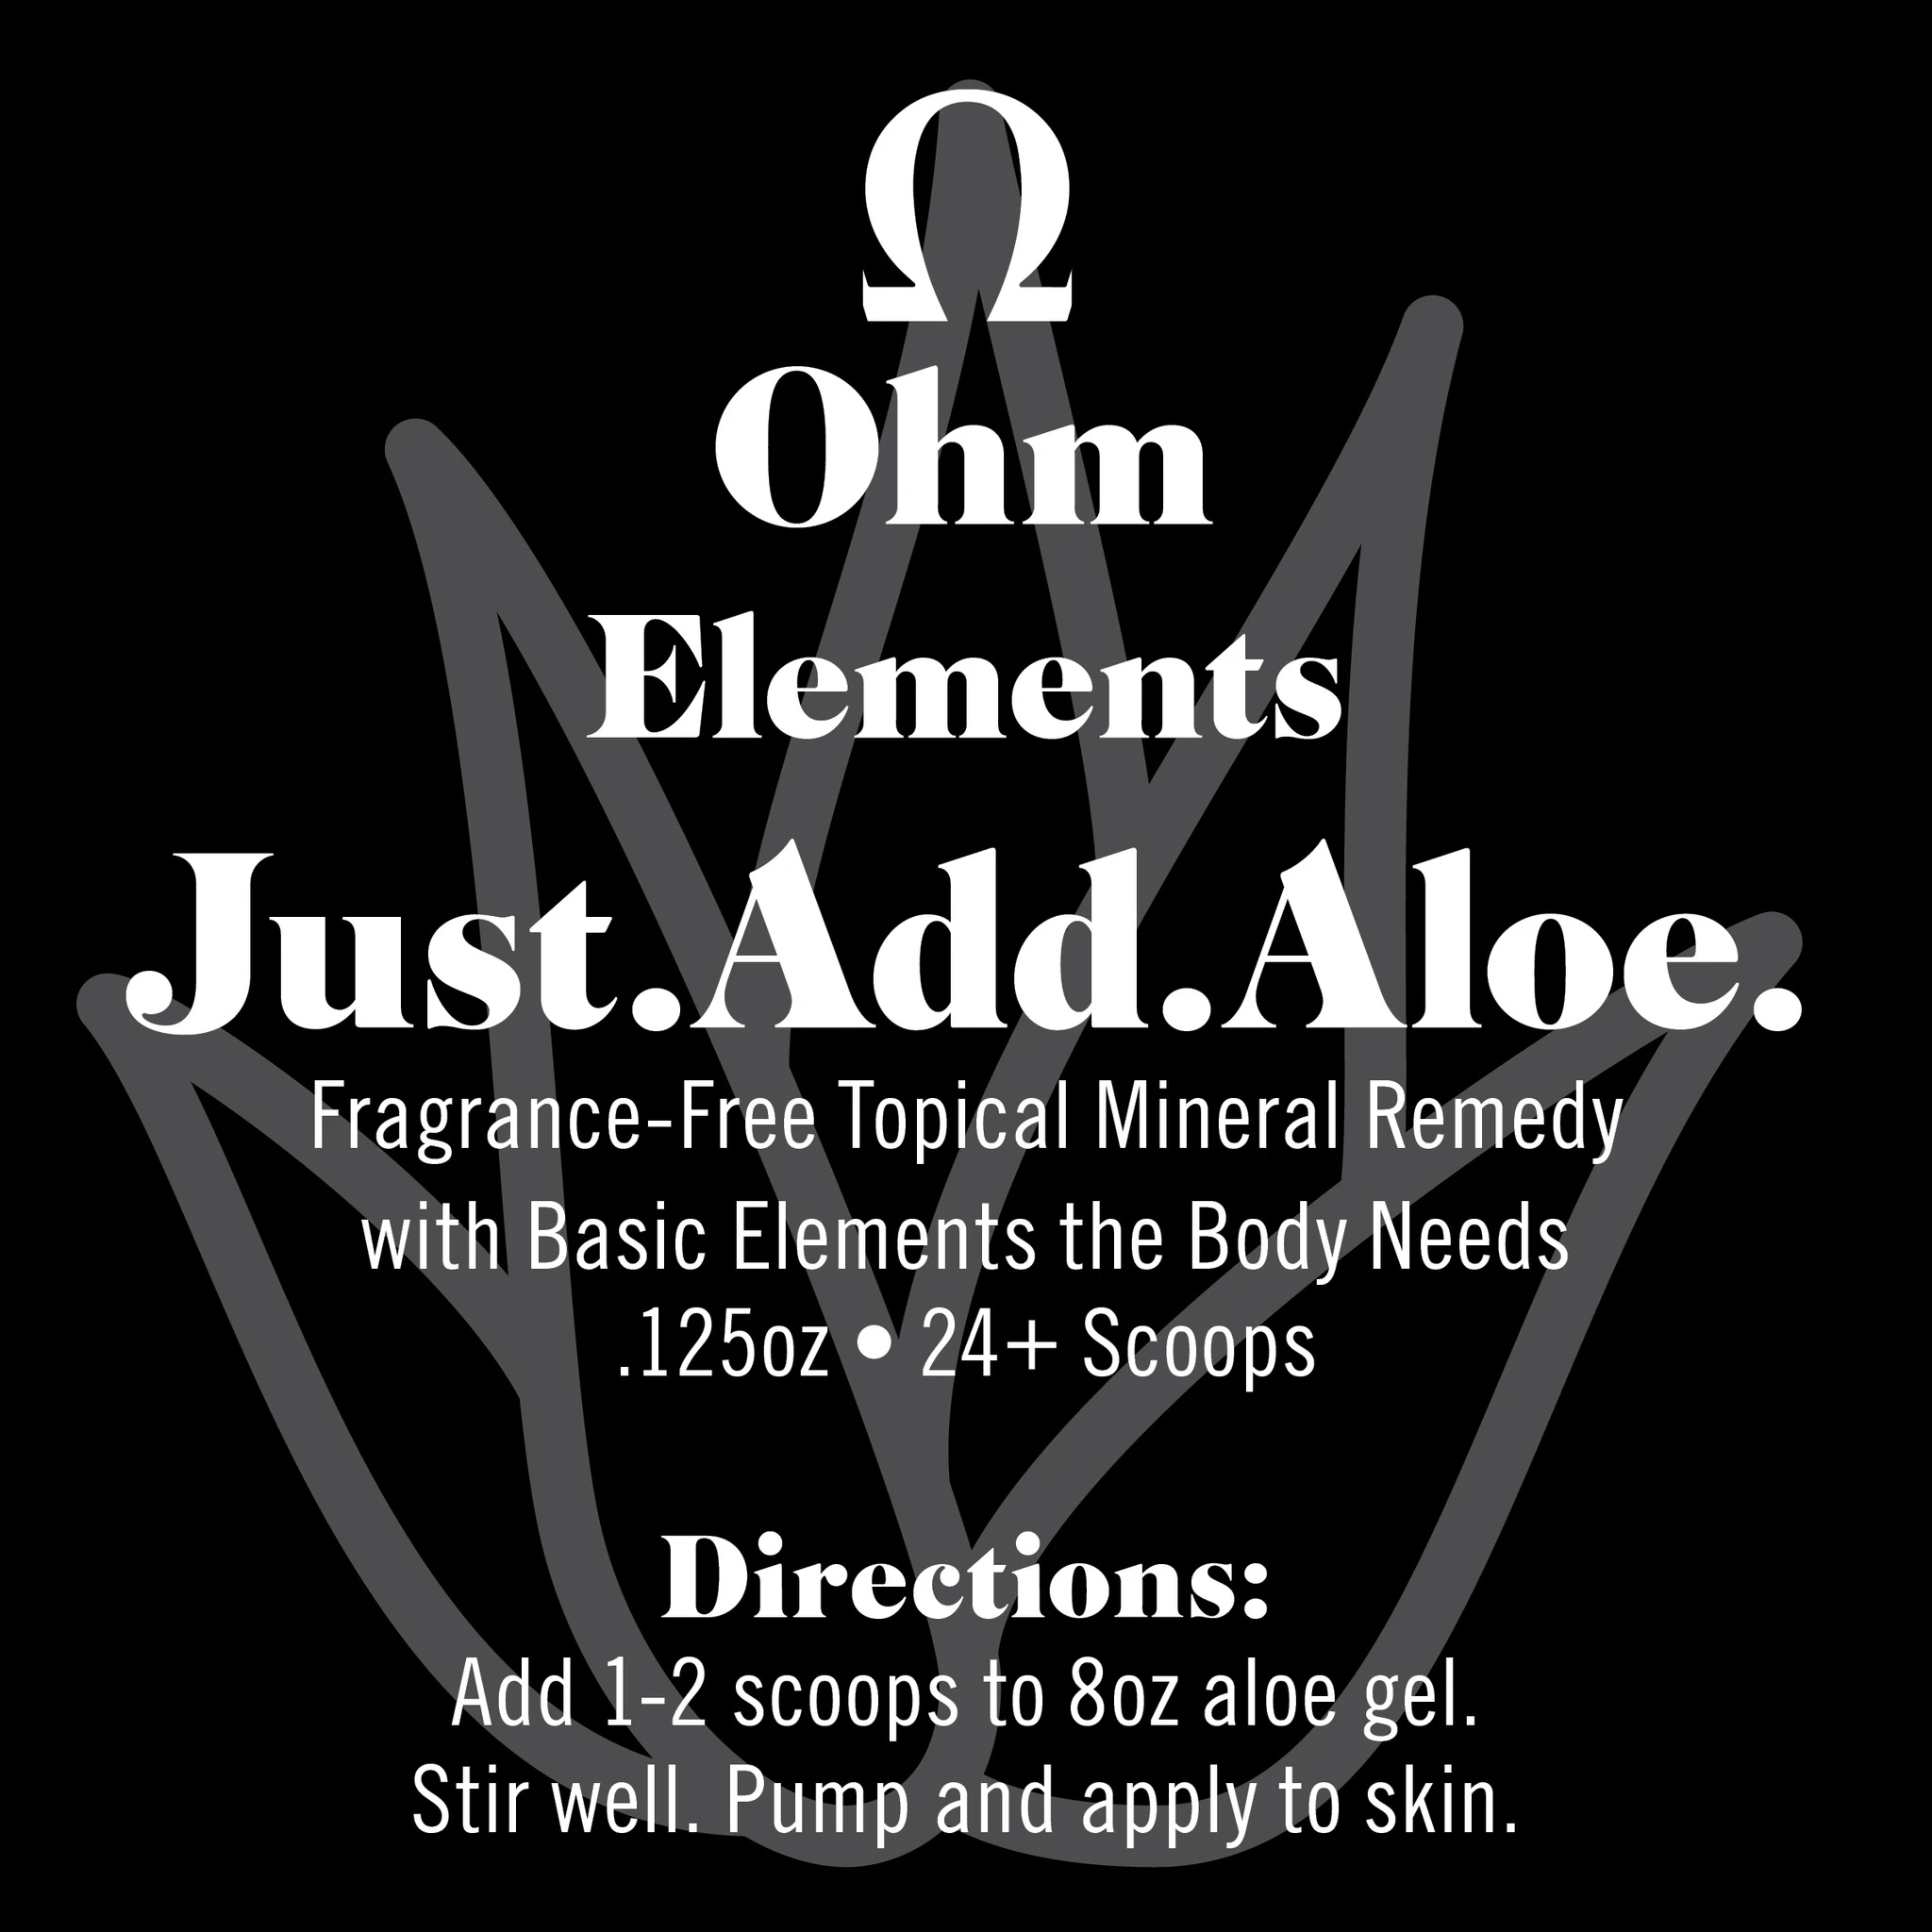 Just.Add.Aloe, Topical Mineral